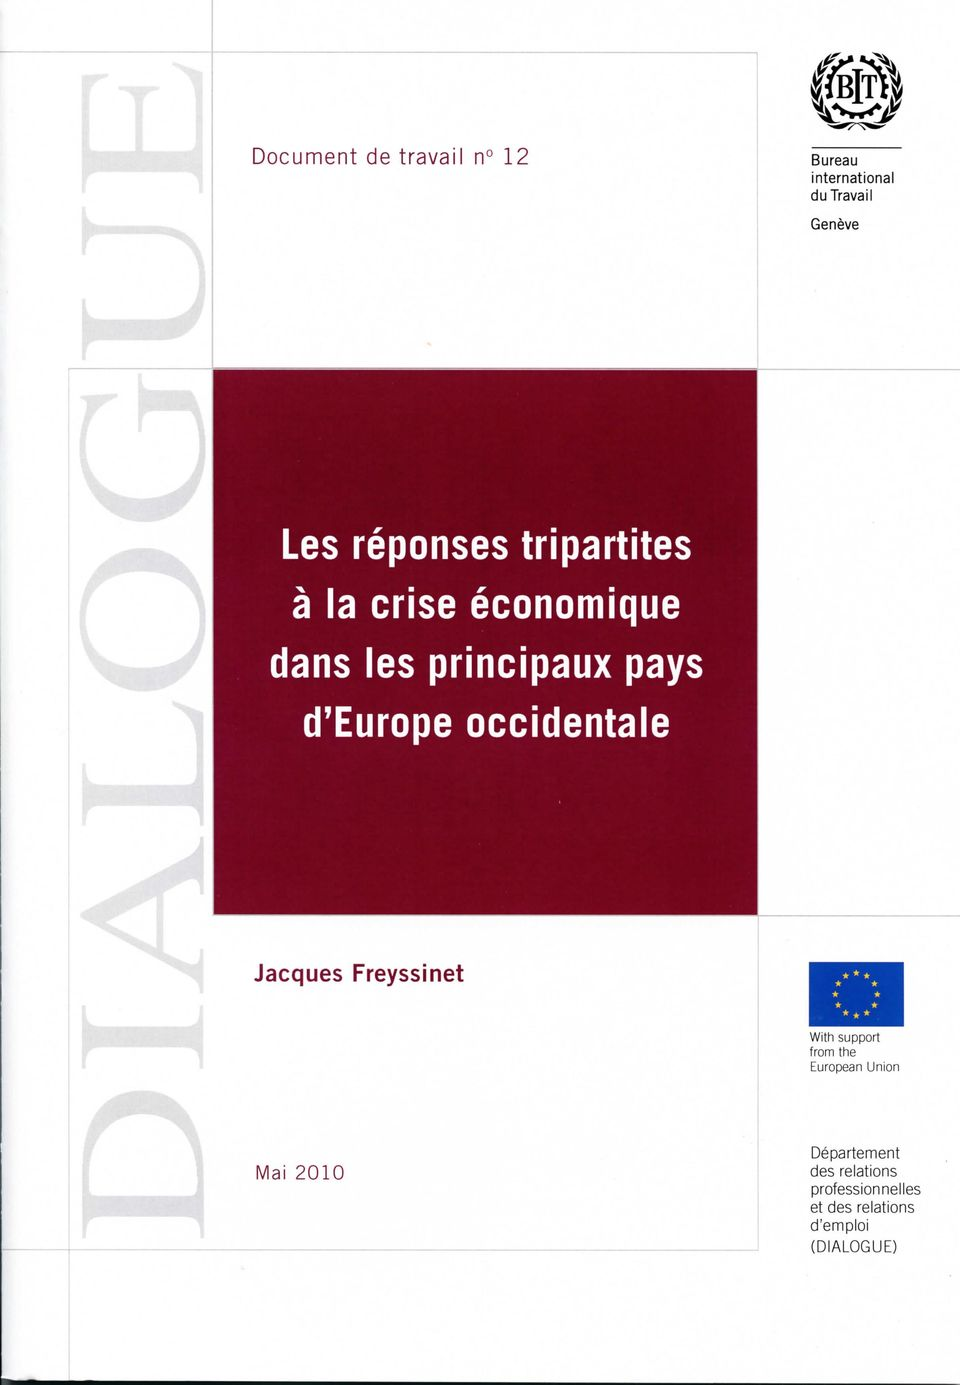 d'europe occidentale Jacques Freyssinet With support from the European